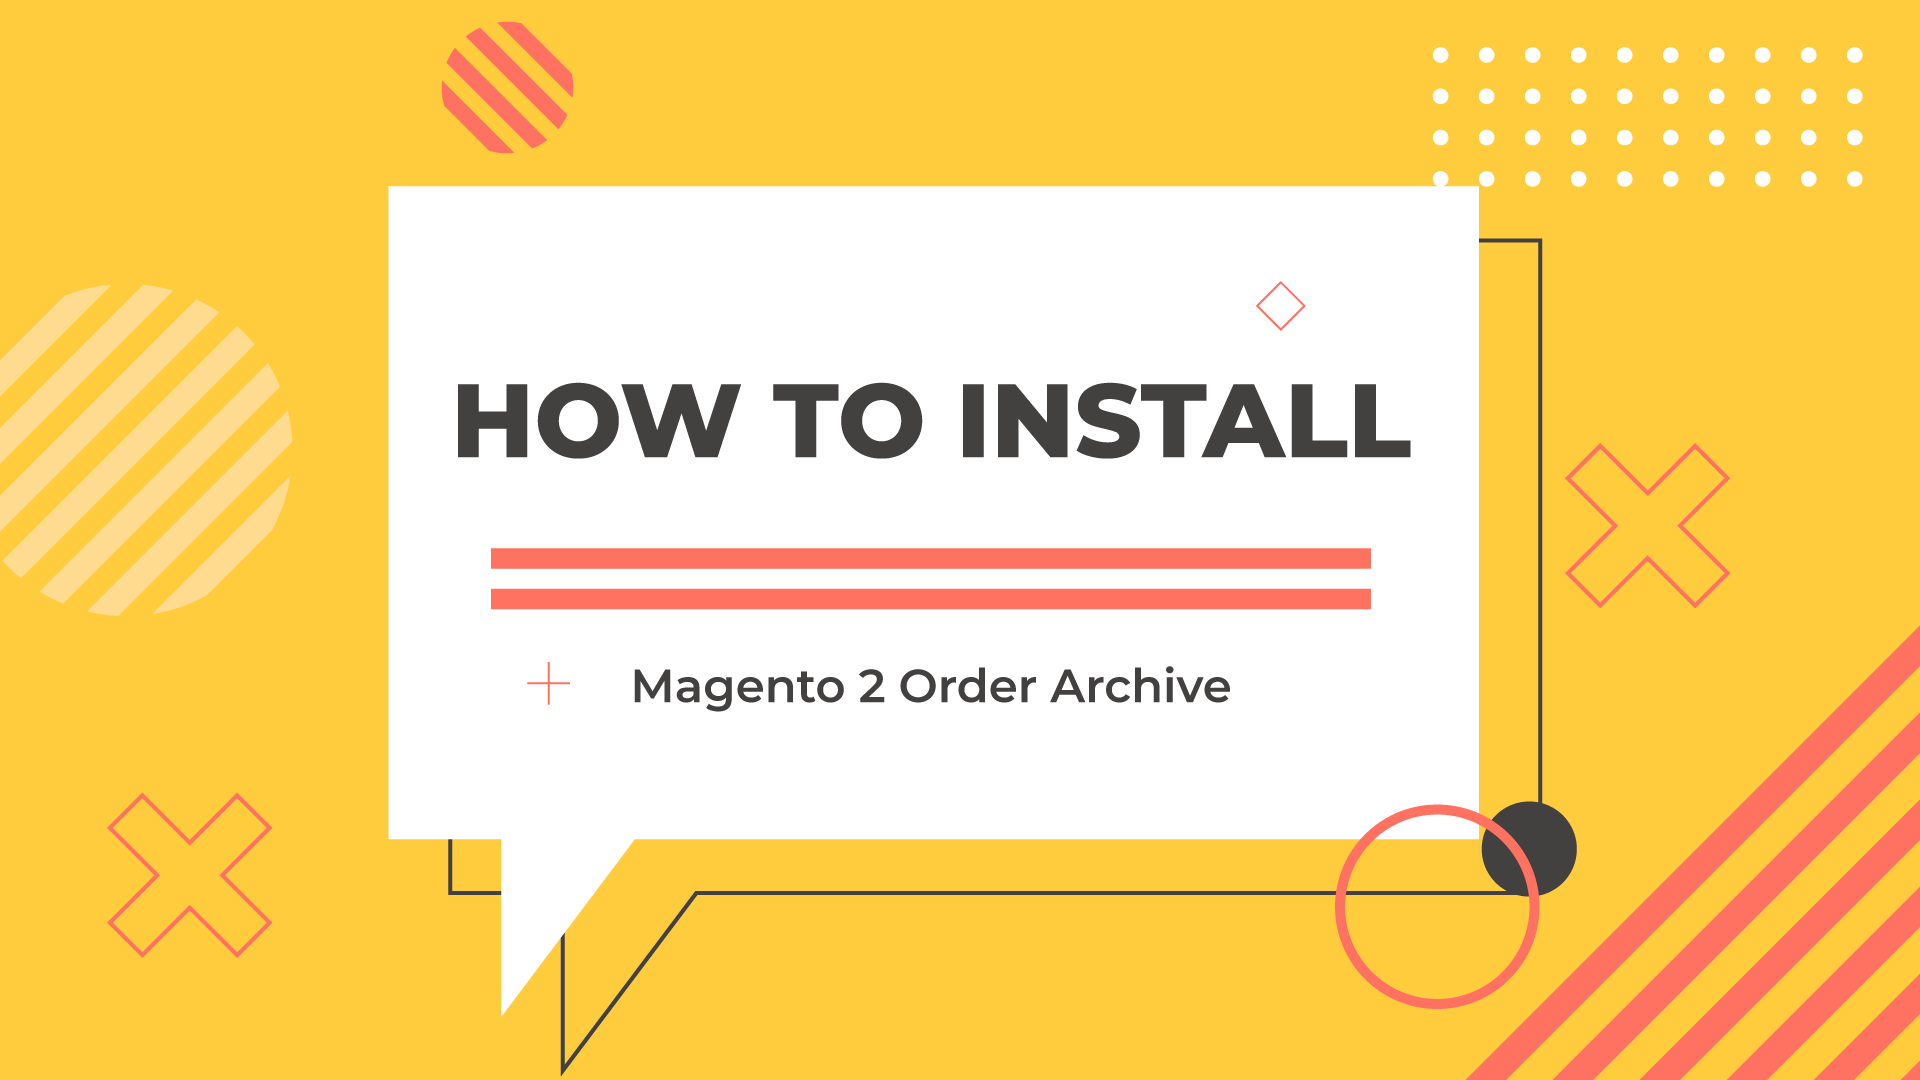 install magento 2 order archive